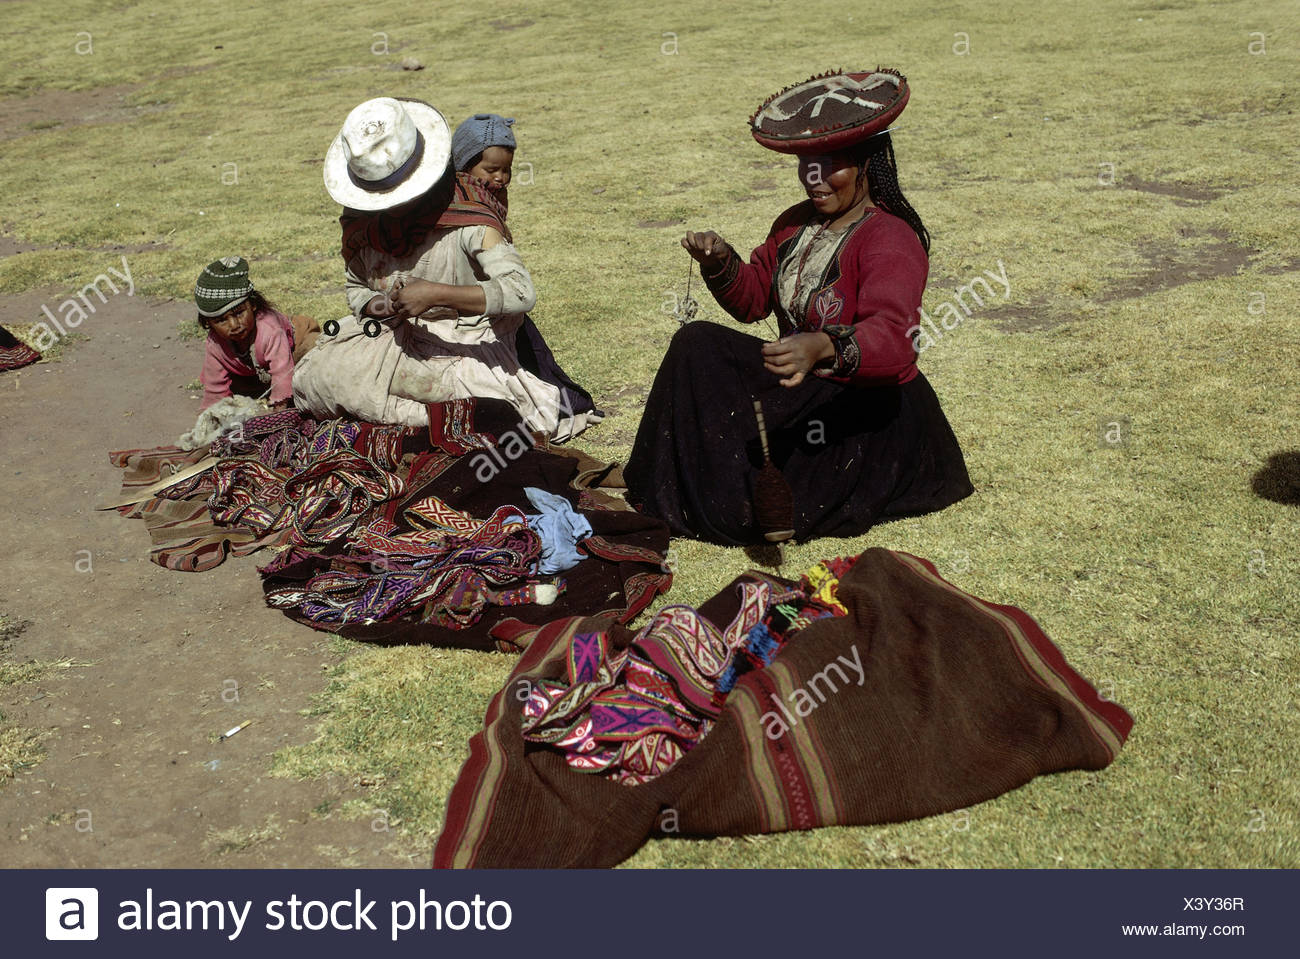 people, mothers with children, Peru, two women and infants, Titicacasee, ethnic, ethnology, South America, child, handcraft, han - Stock Image